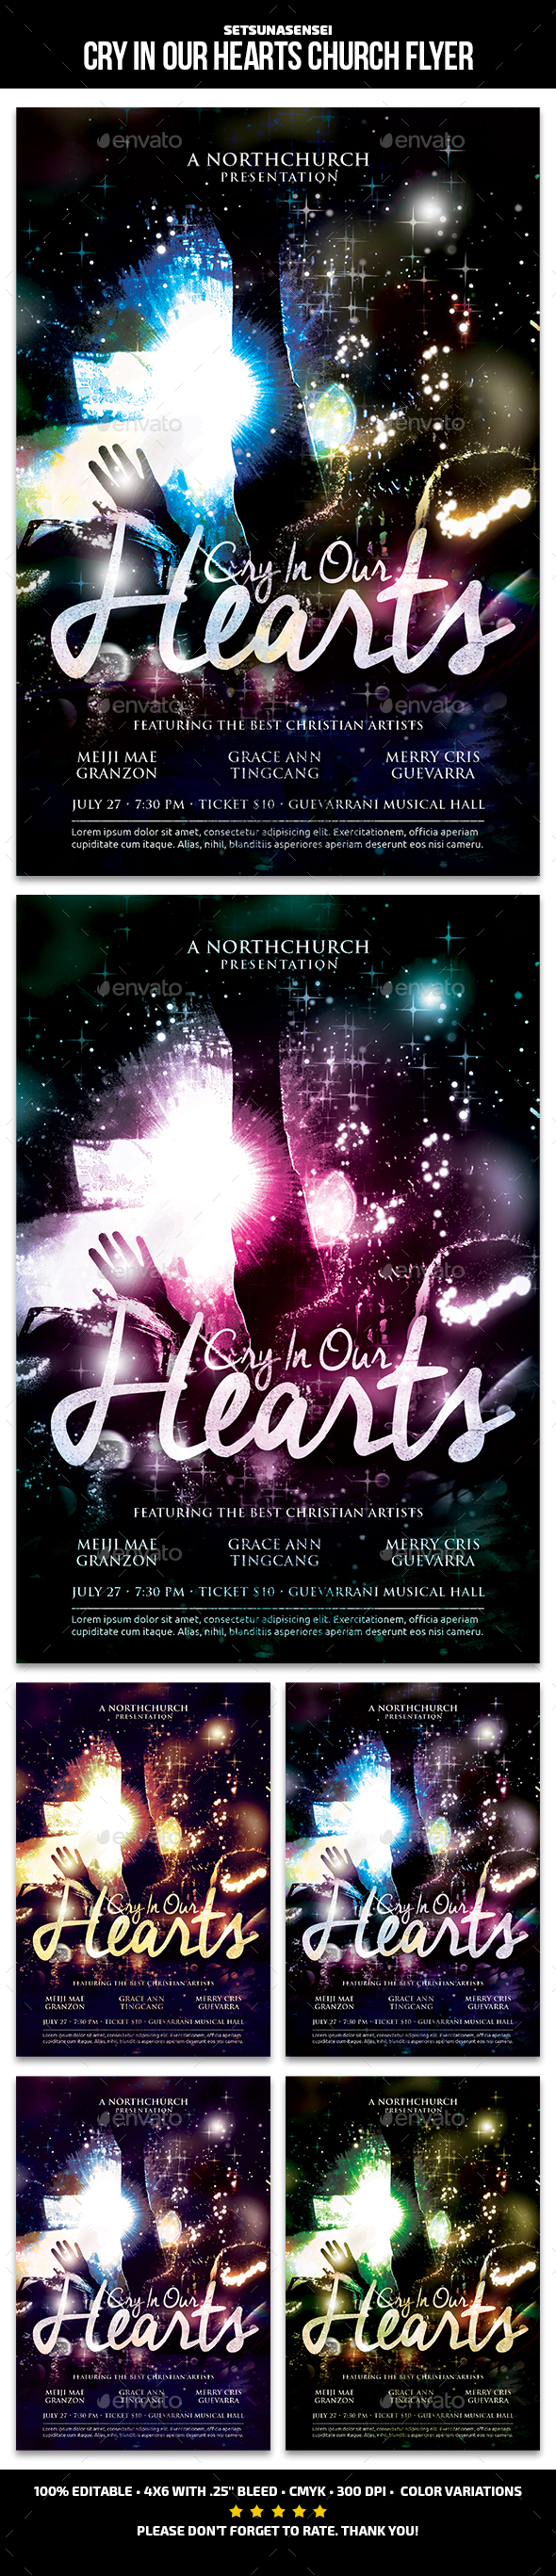 Cry In Our Hearts Church Flyer - Church Flyers